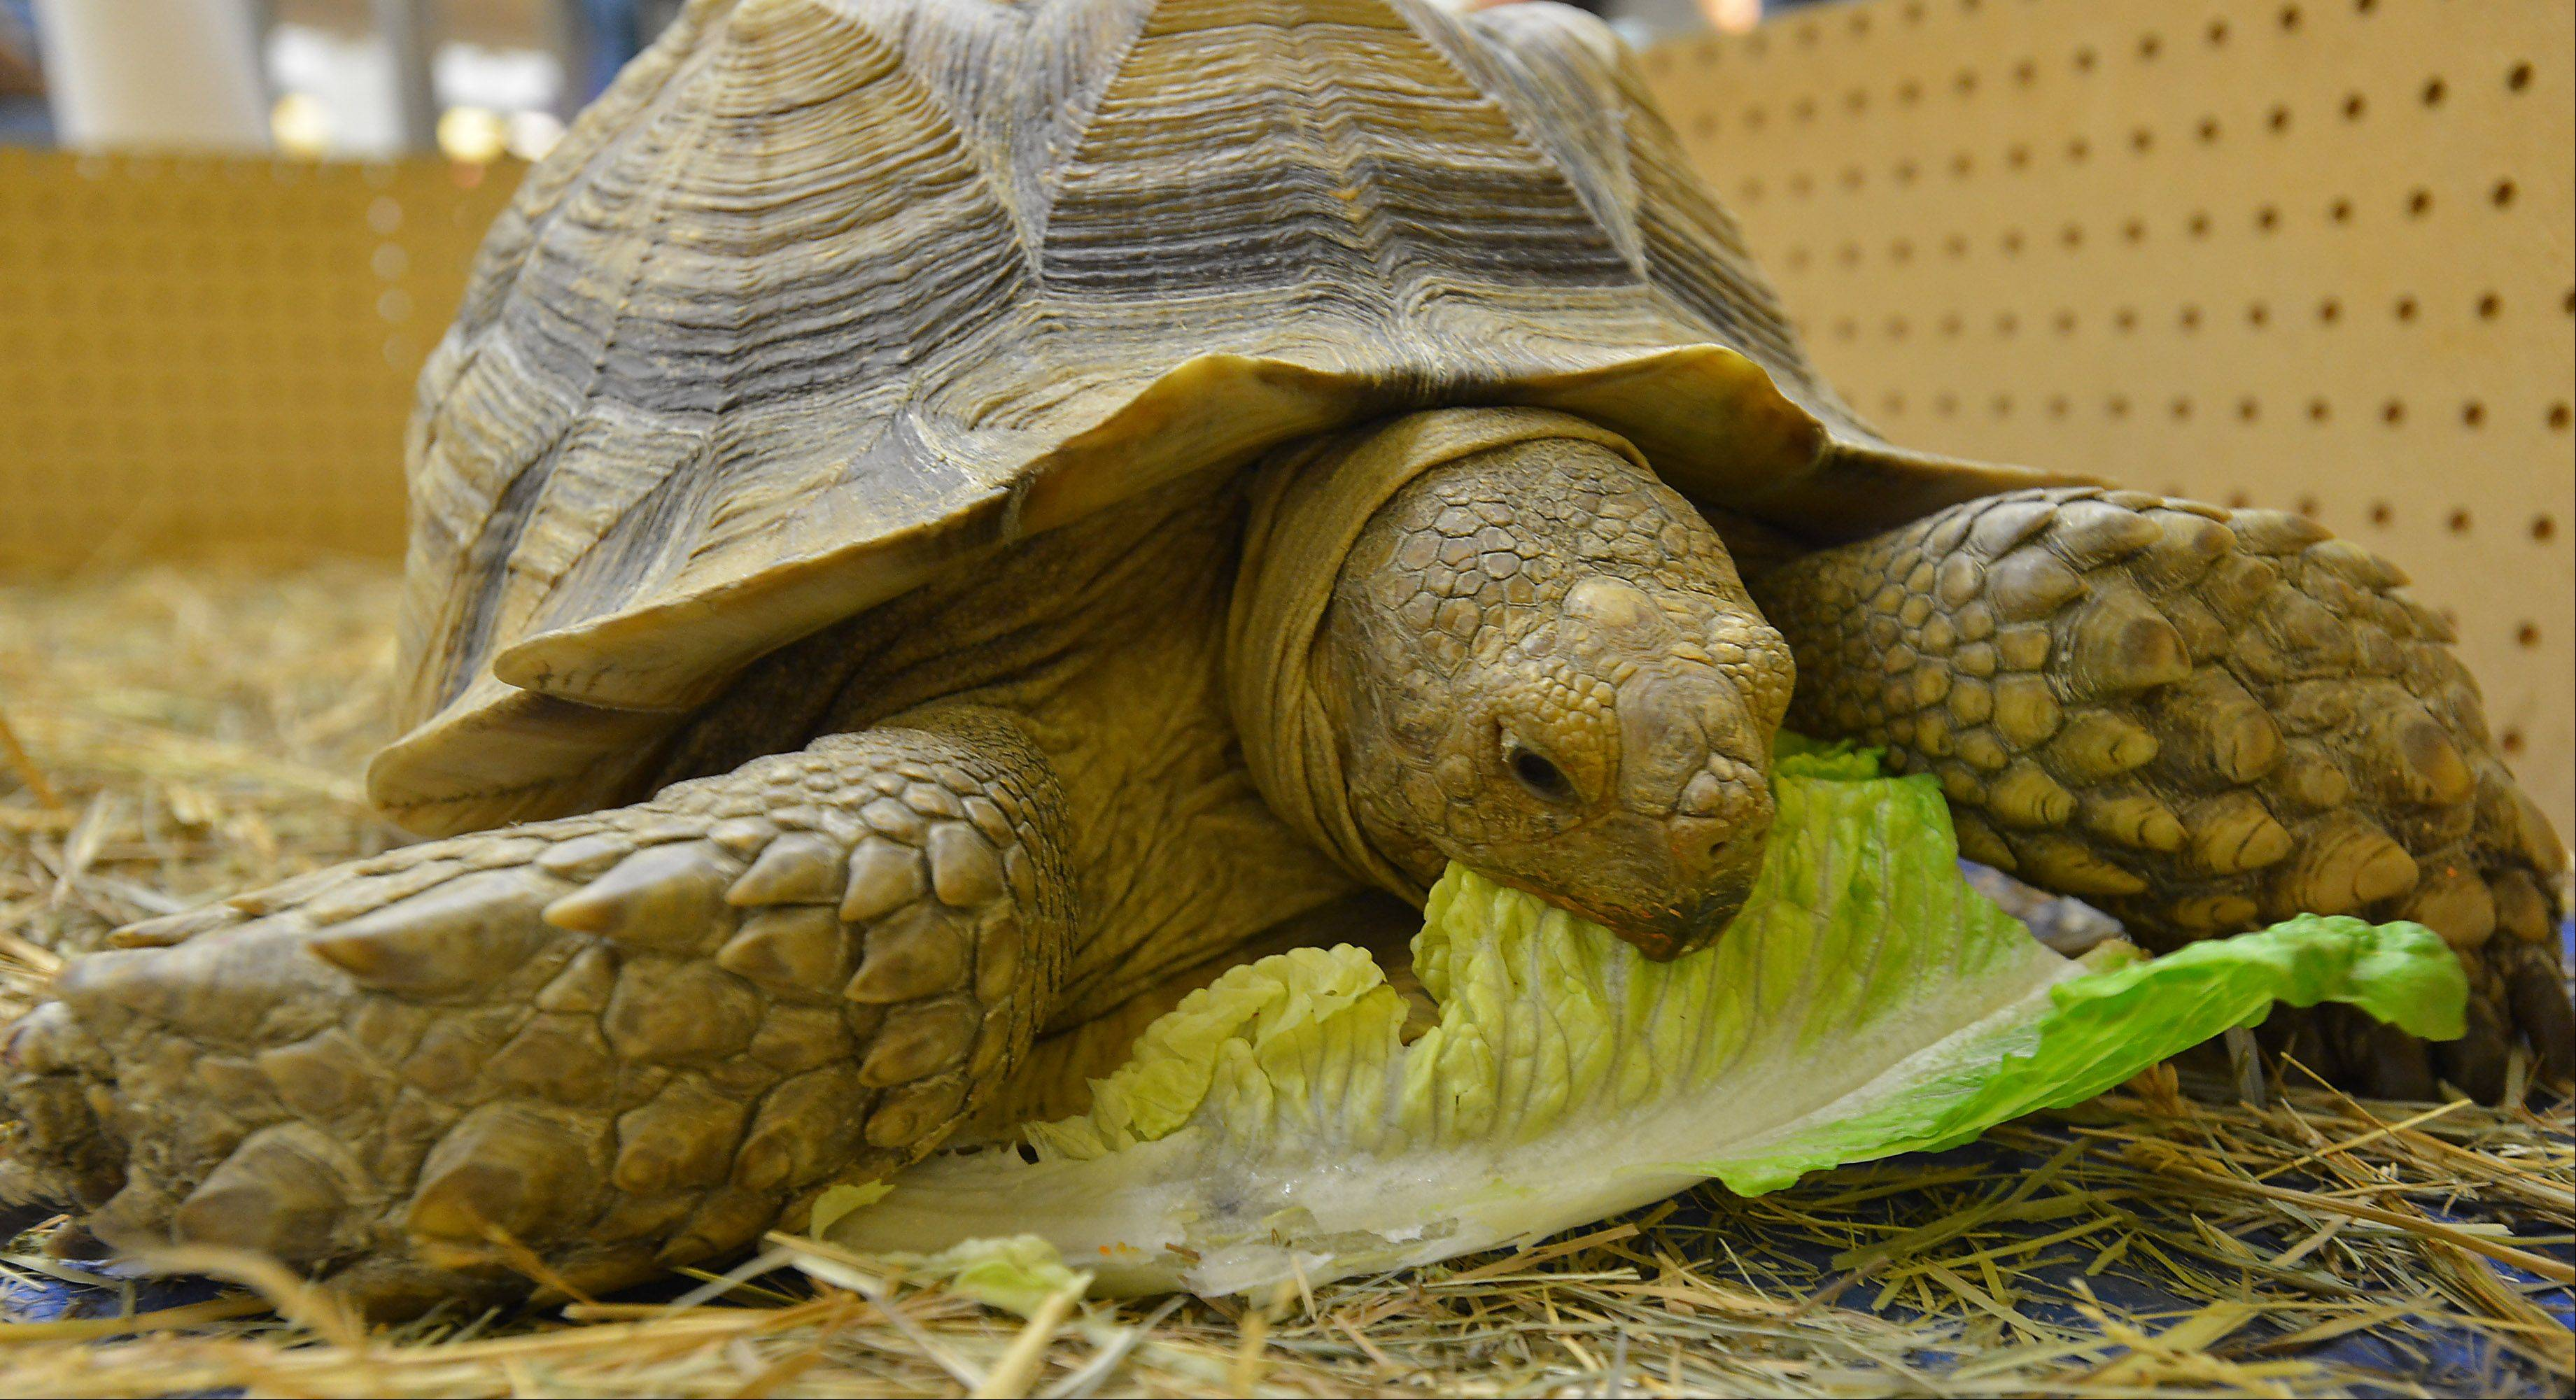 An African Spur Thigh Tortoise, the third largest in the world.